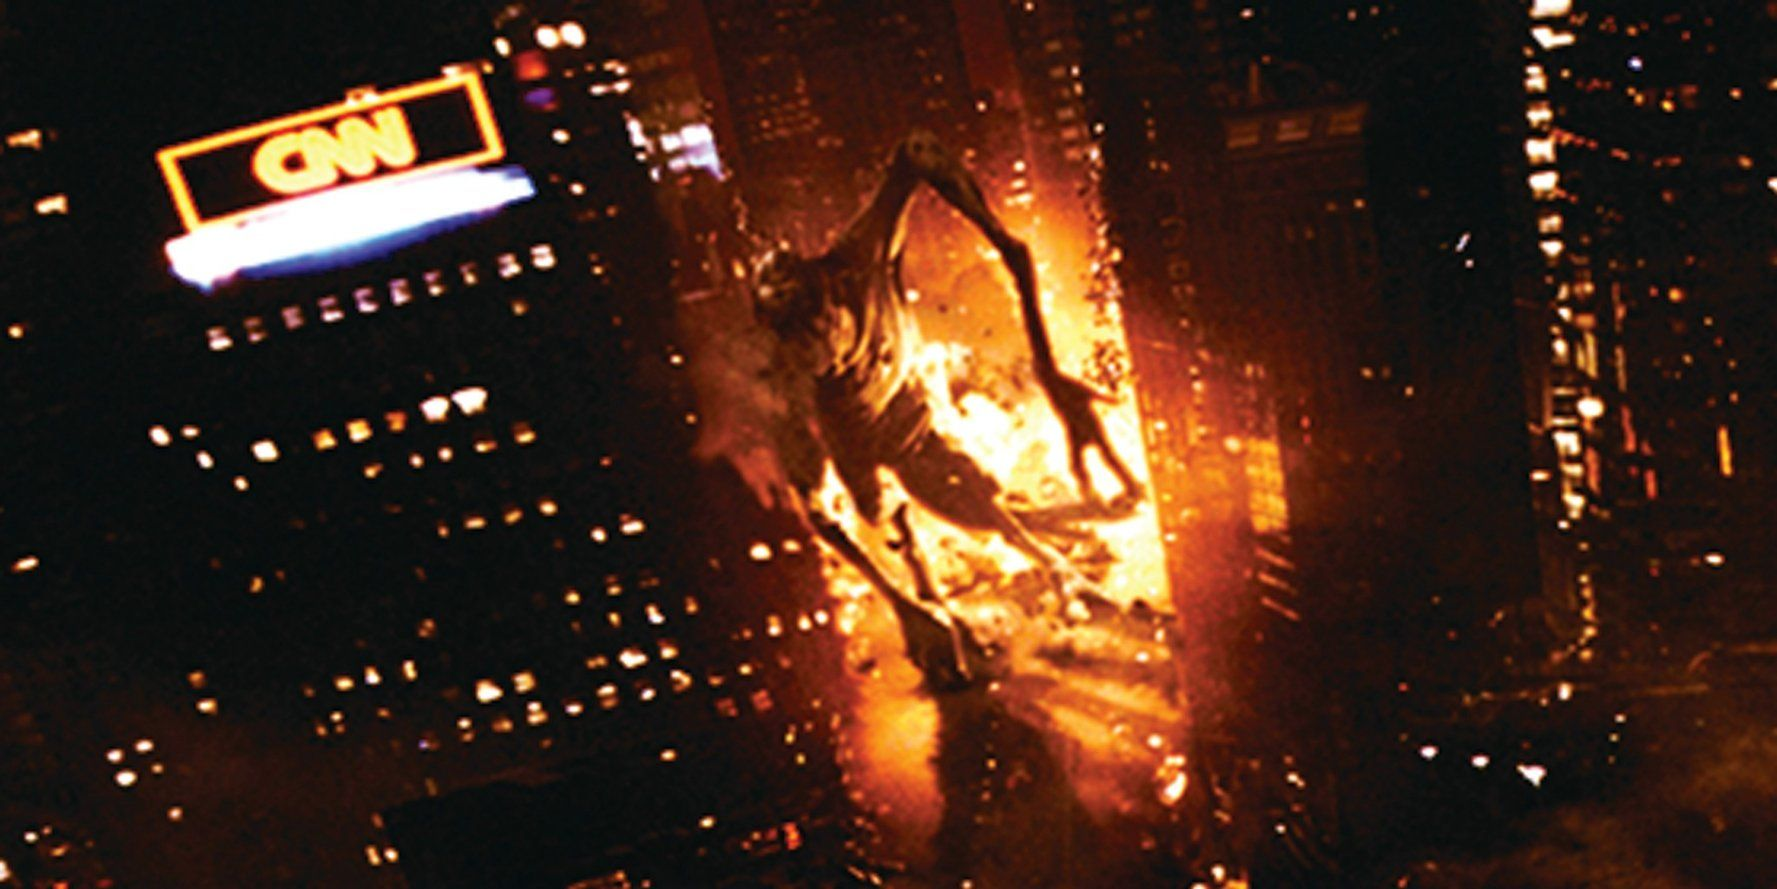 Monster rampaging through the streets of New York in Cloverfield (2008)